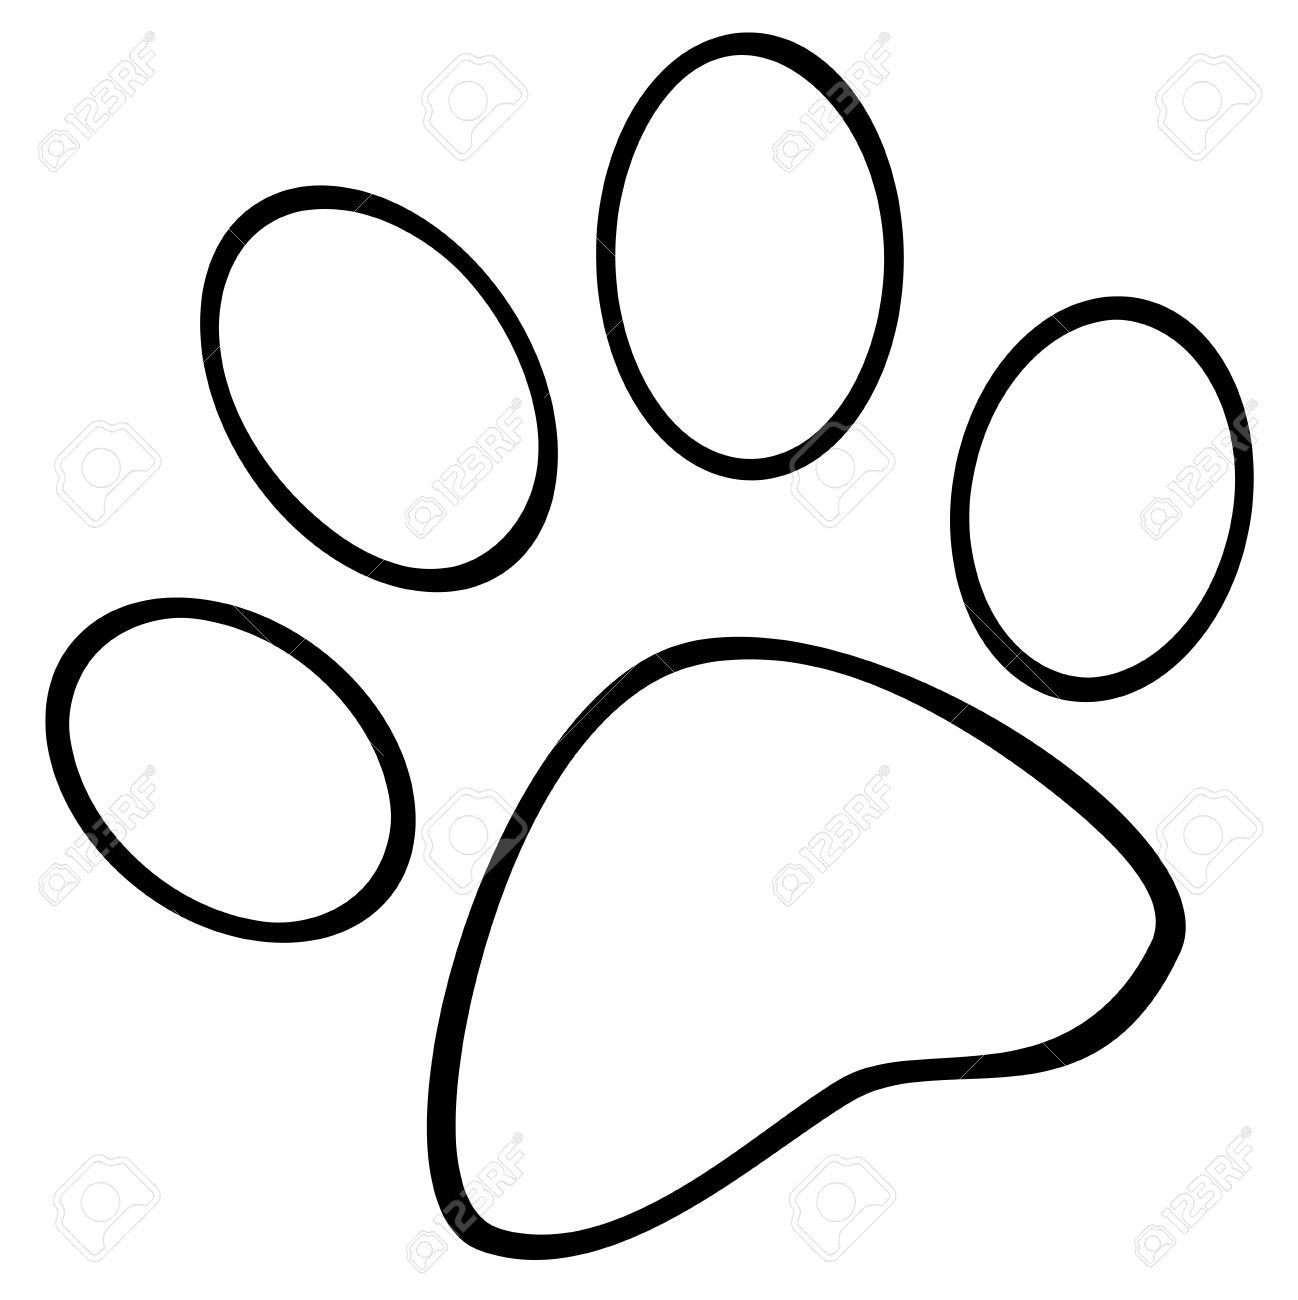 1298x1300 Dog Paw Print Drawing Picture Of Dog Paw Prints Free Download